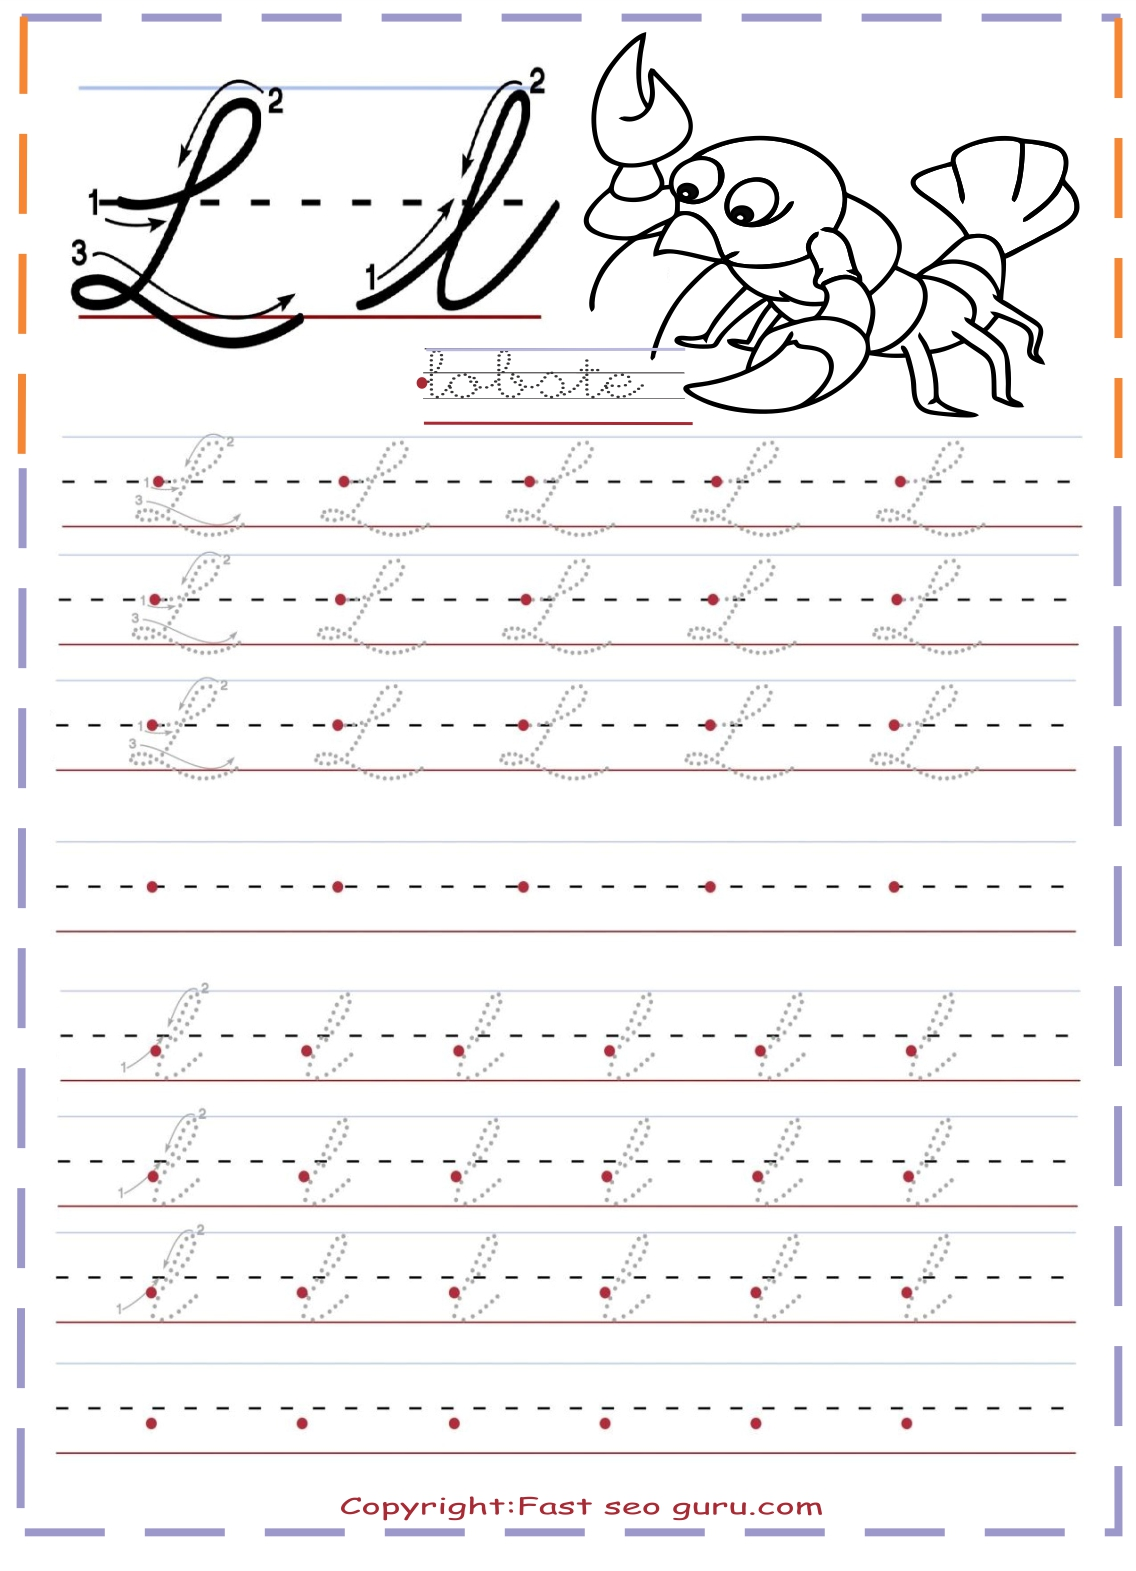 Cursive Handwriting Practice Tracing Worksheets Letter L